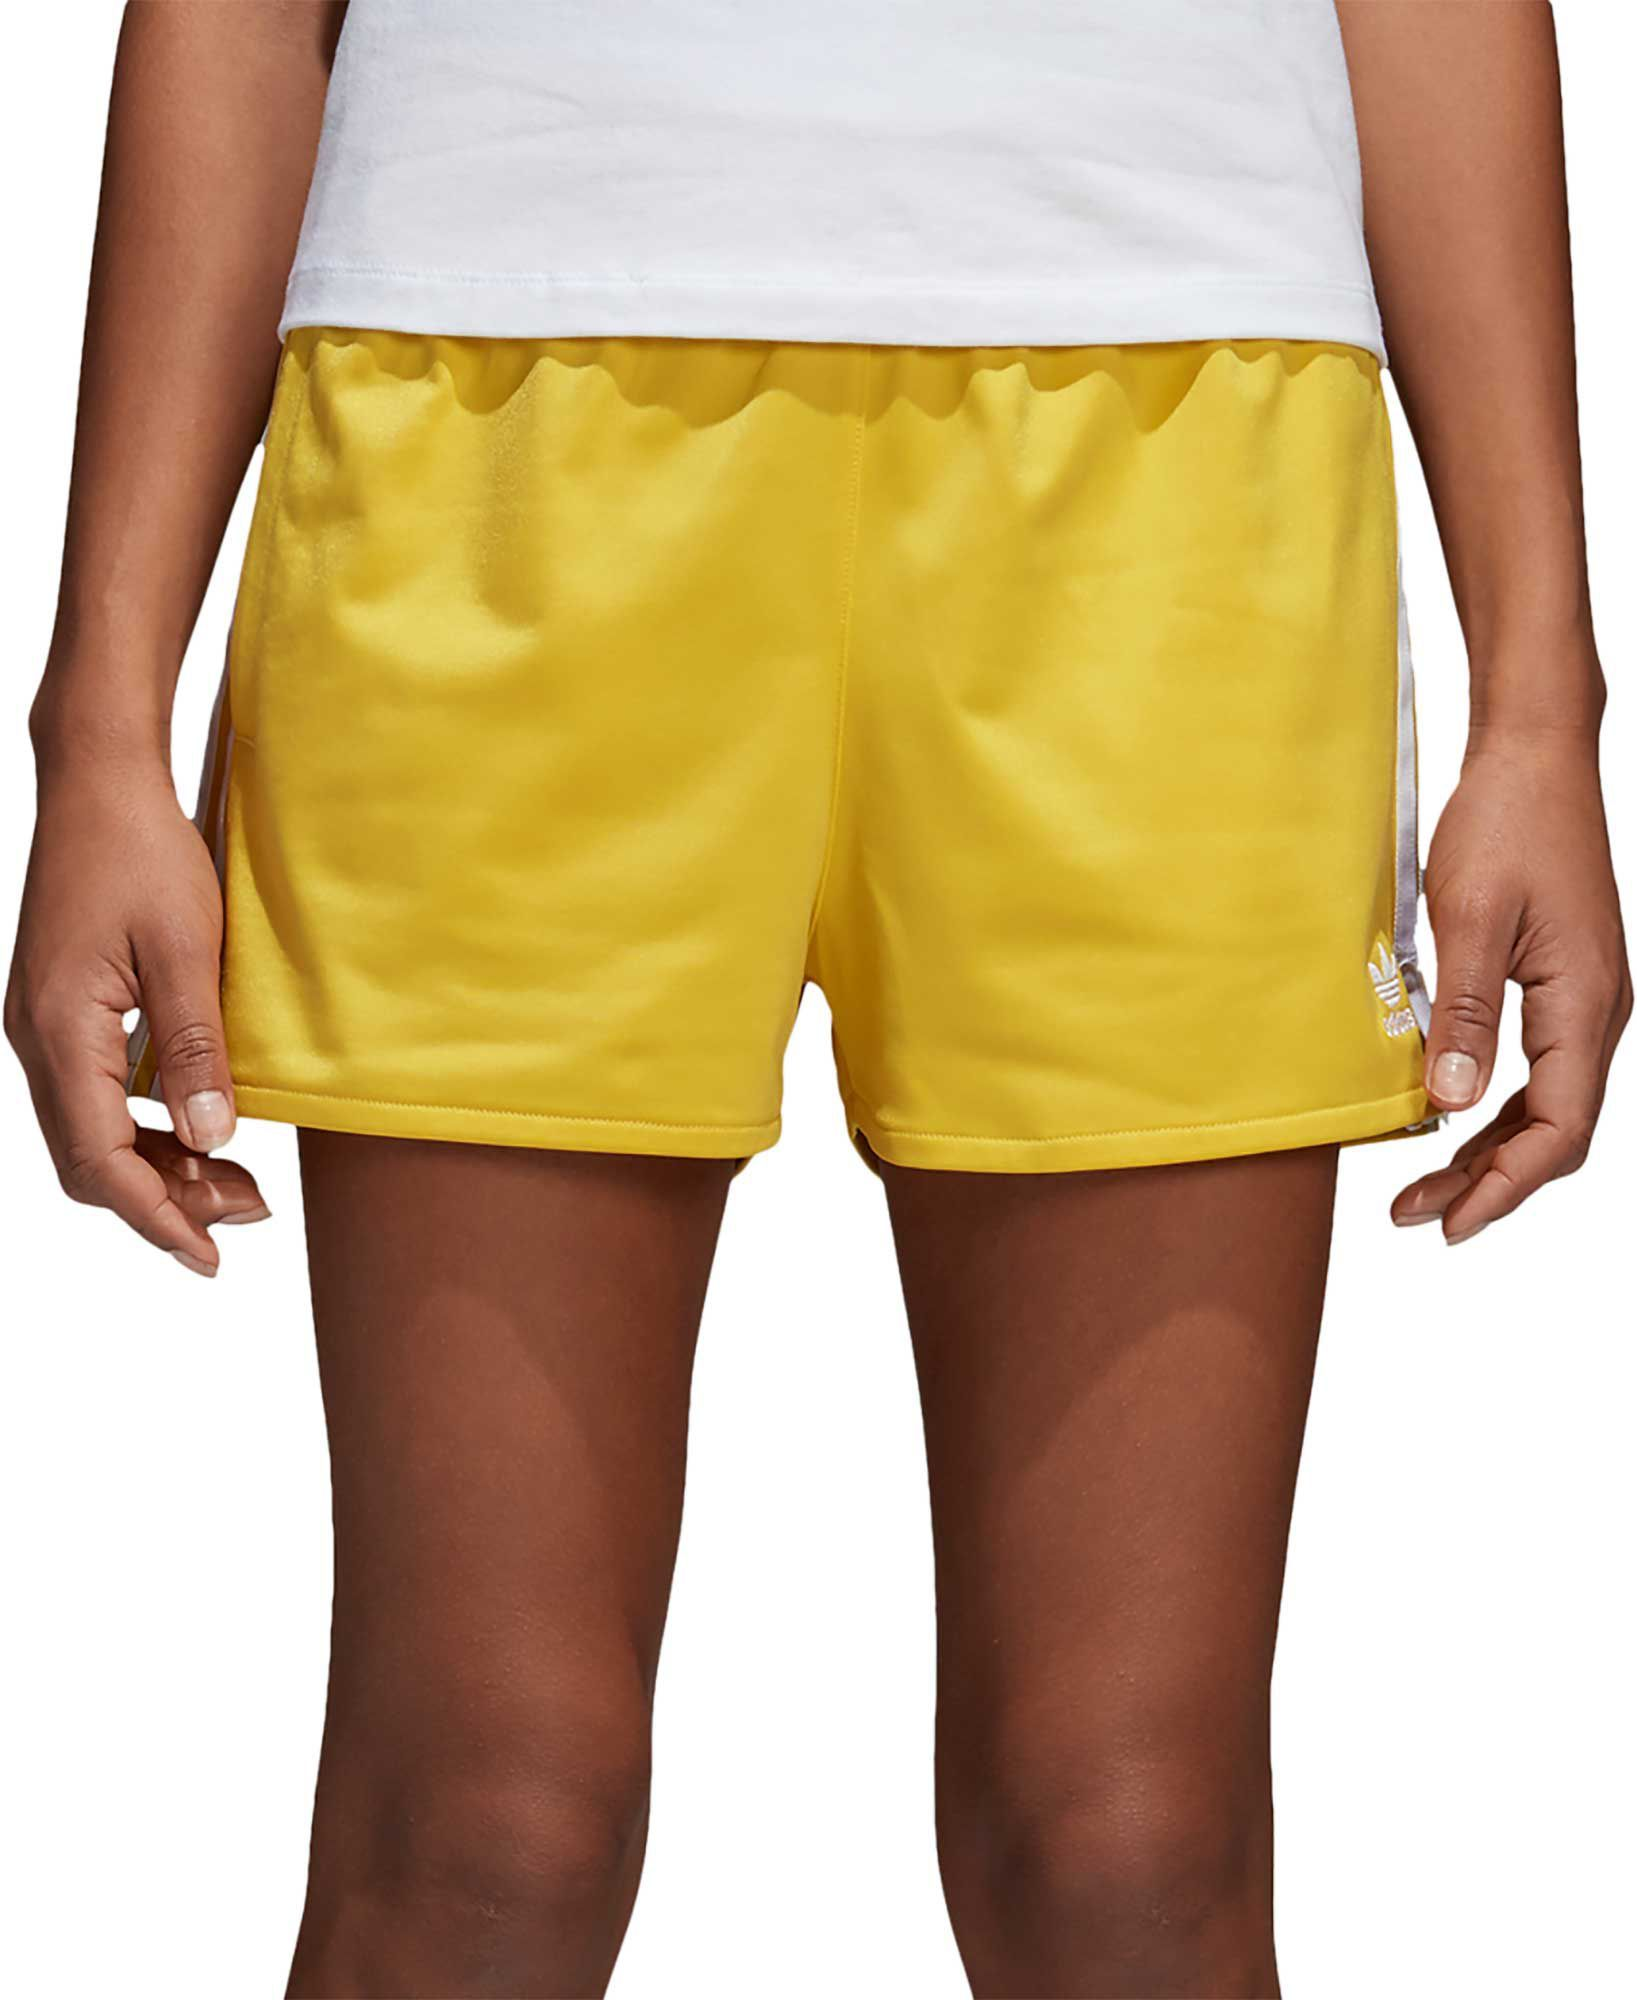 bc52502ef adidas Originals Women's 3-Stripes Shorts   Products   Striped ...